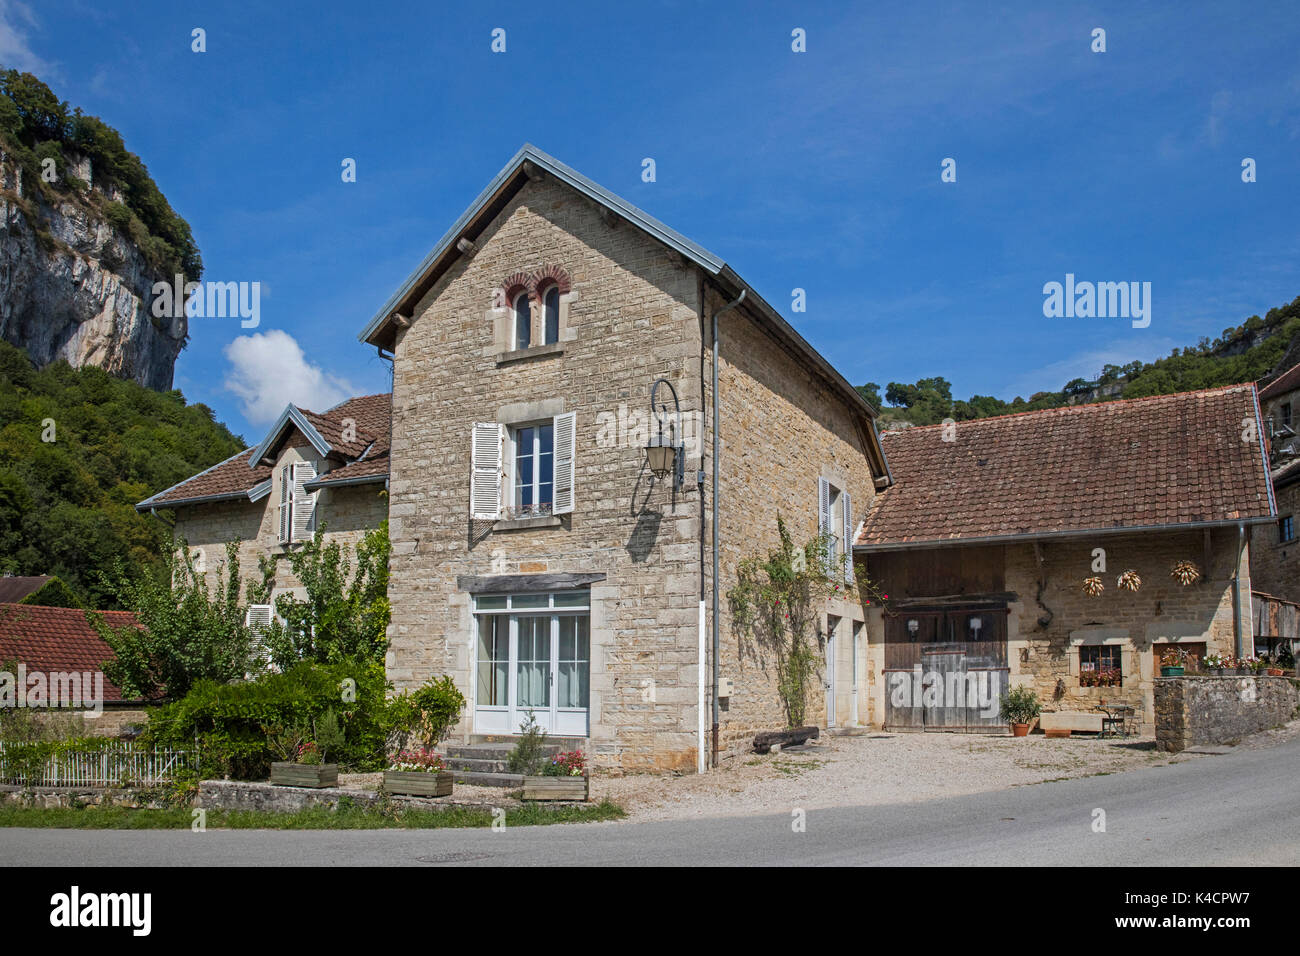 Typical house in the village Baume-les-Messieurs, Jura department in Franche-Comté, Lons-le-Saunier, France - Stock Image